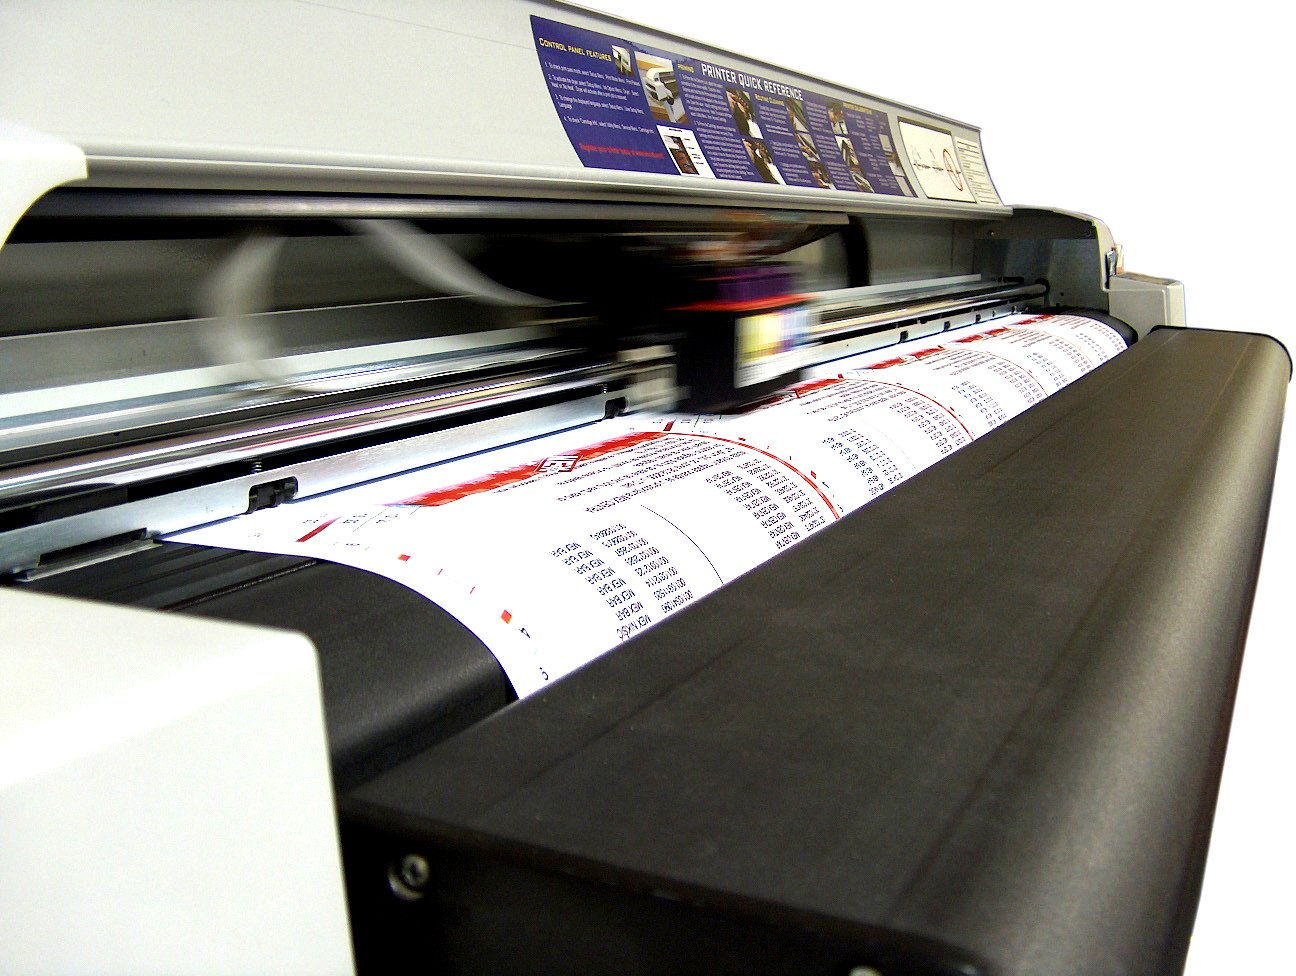 Cryptocurrency printing